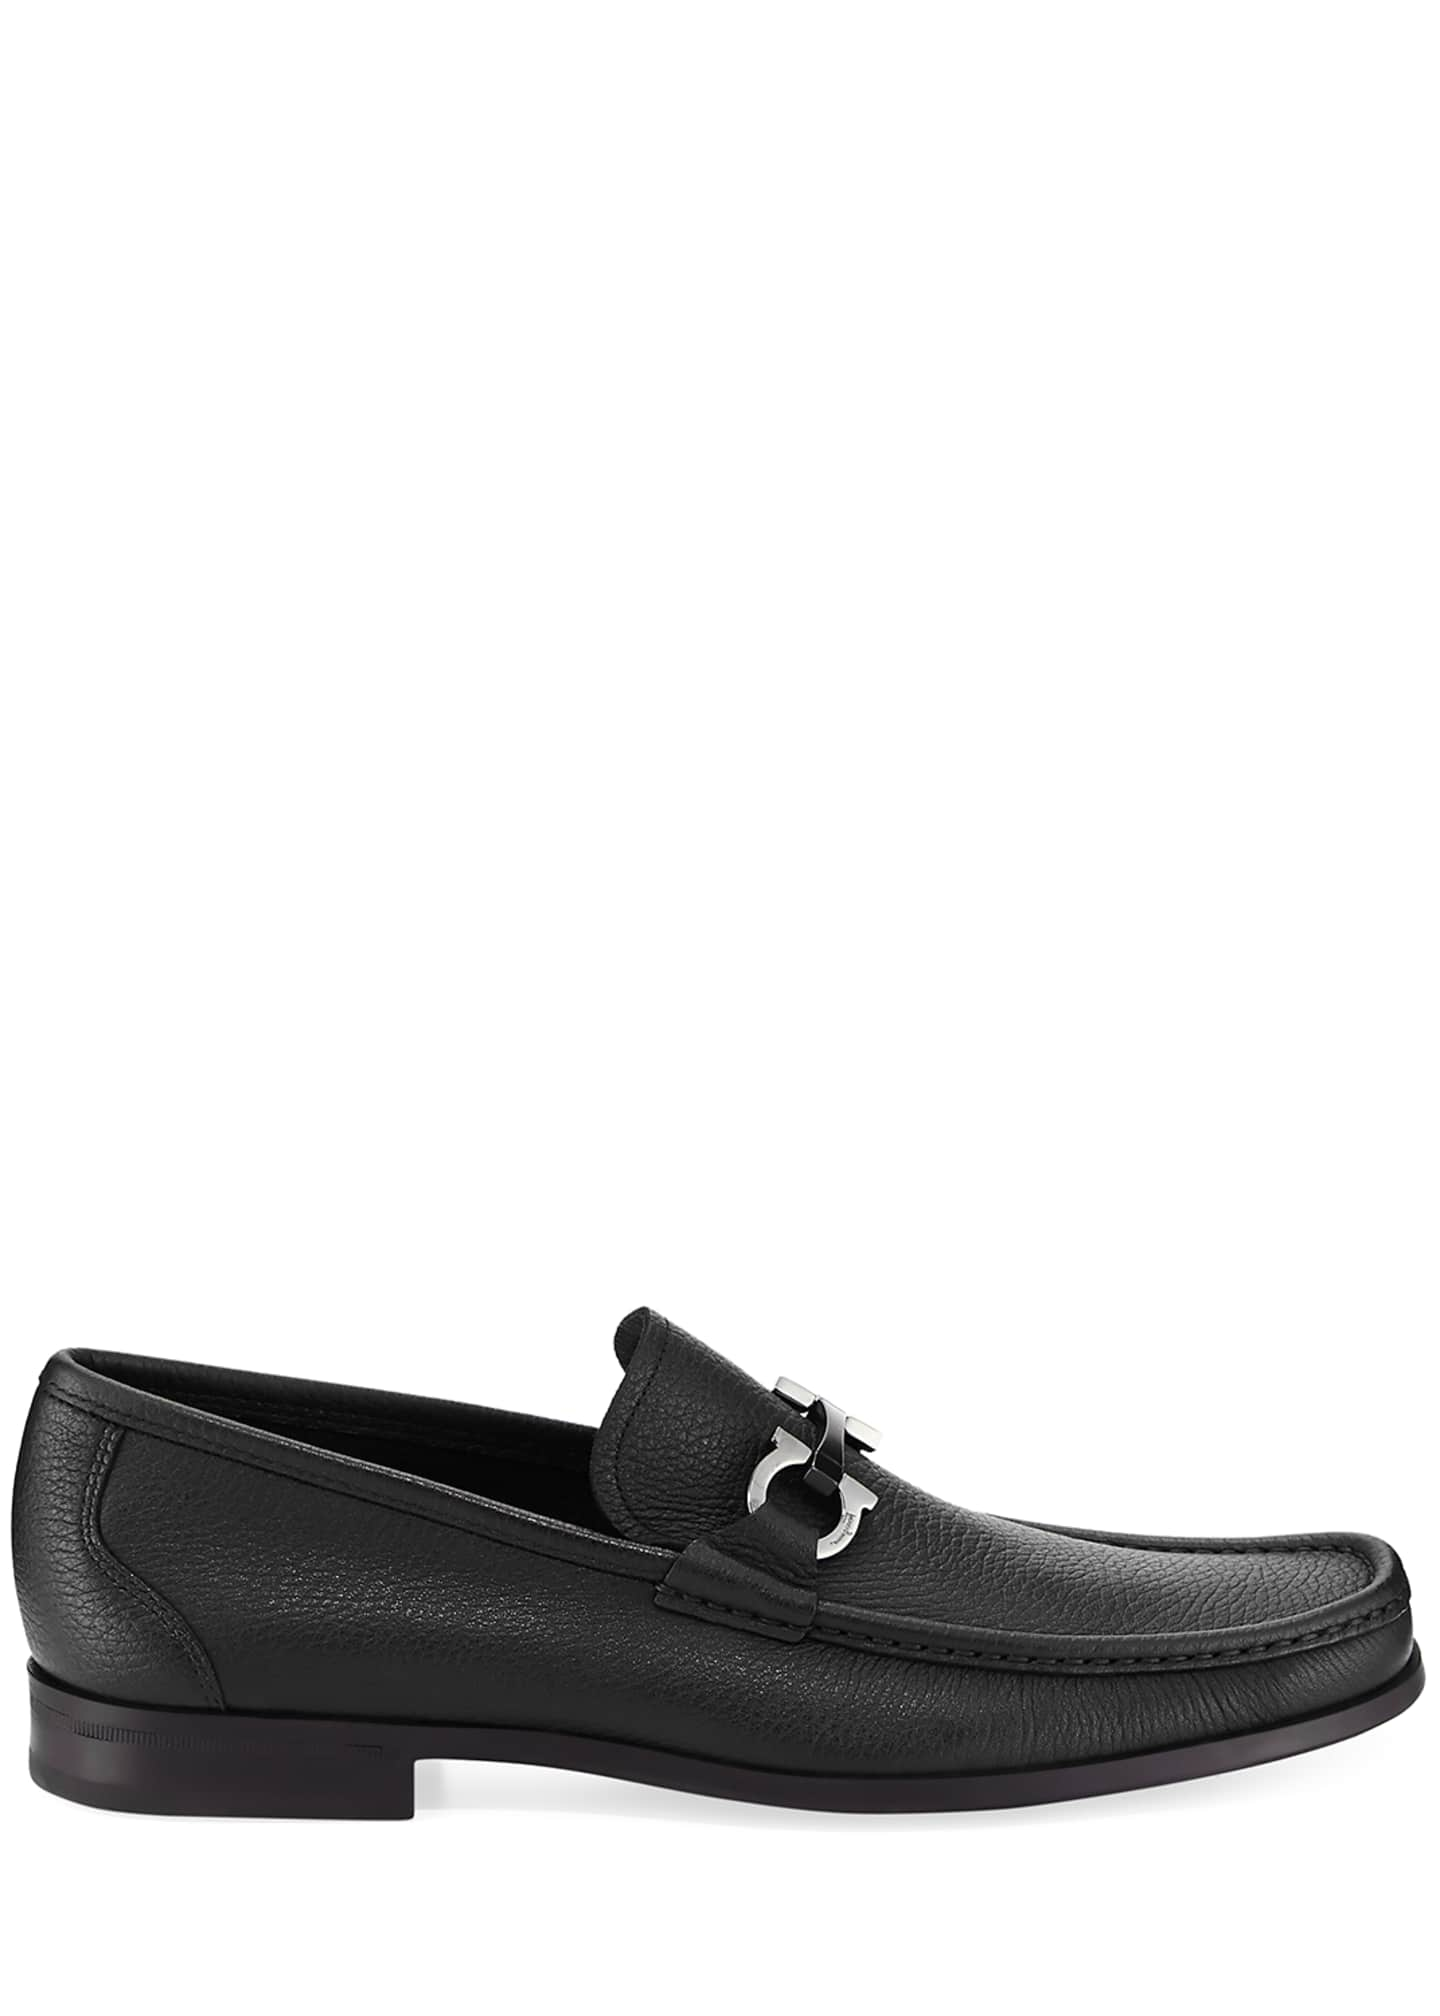 Image 3 of 5: Men's Grained Calf Leather Bit Loafer